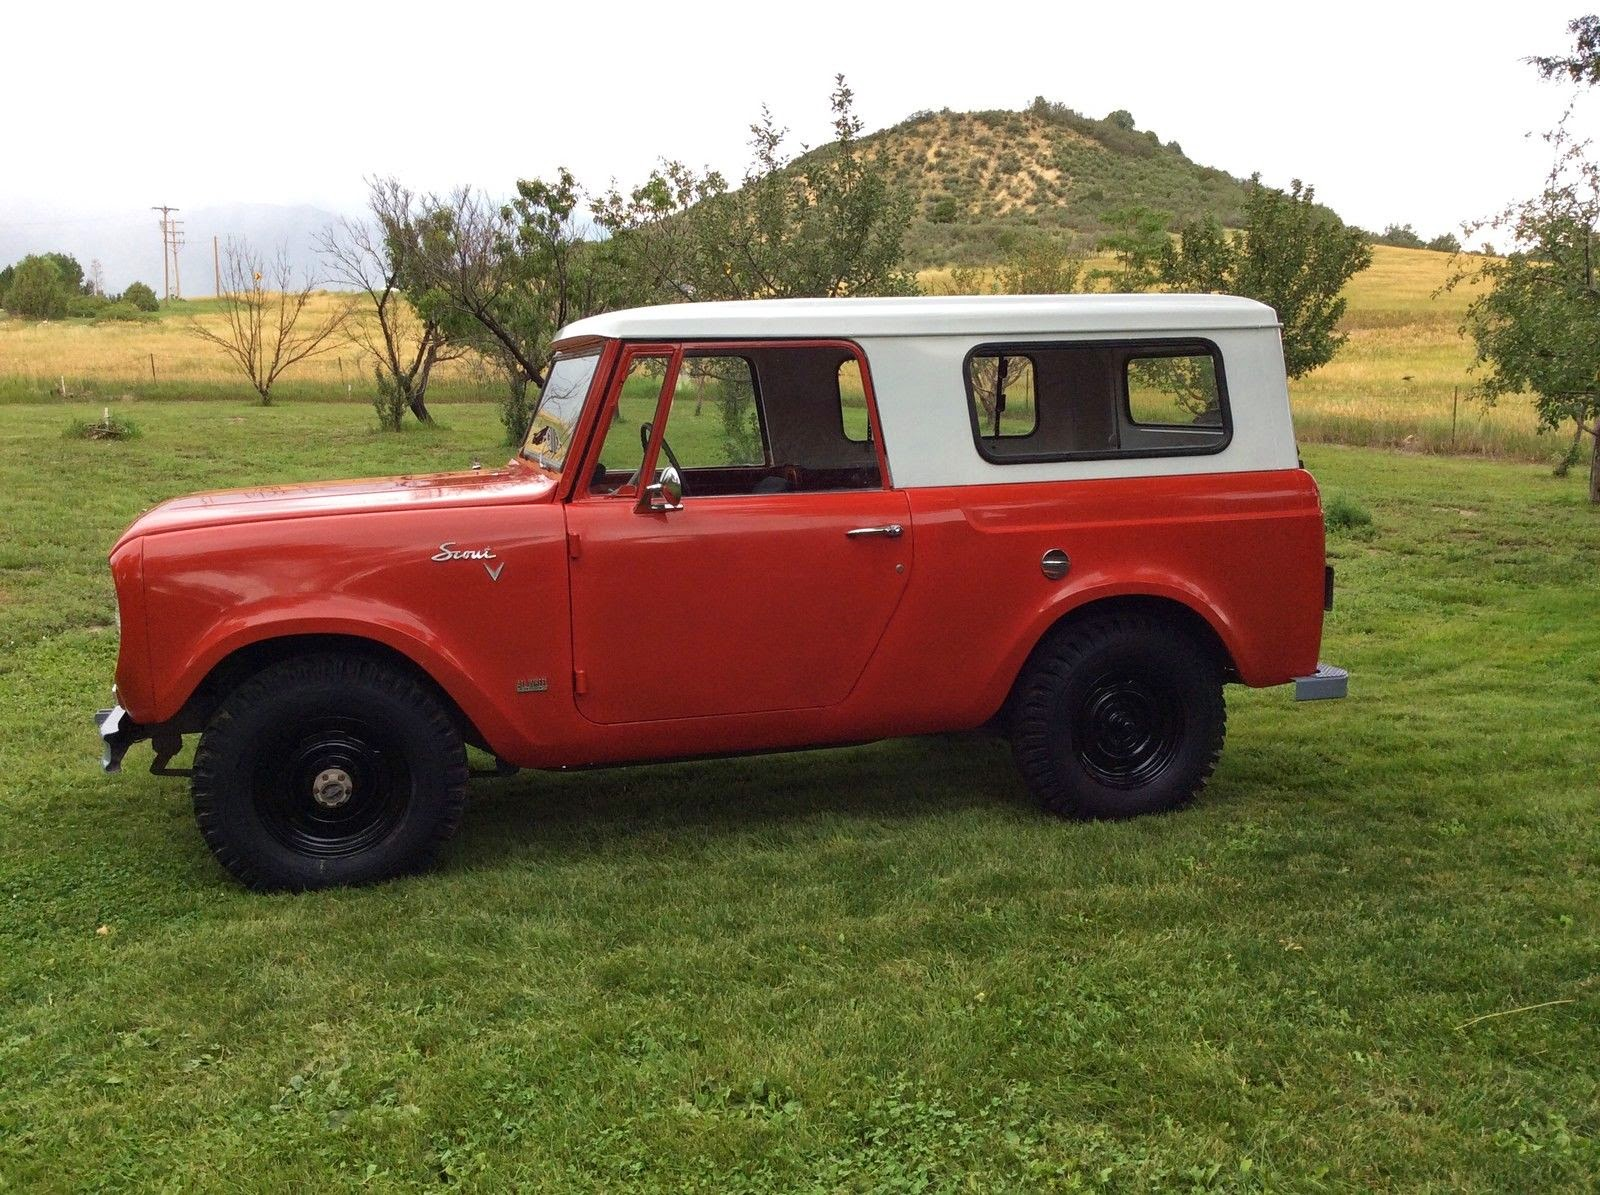 Daily turismo 5k classic offroader 1967 international harvester scout 800